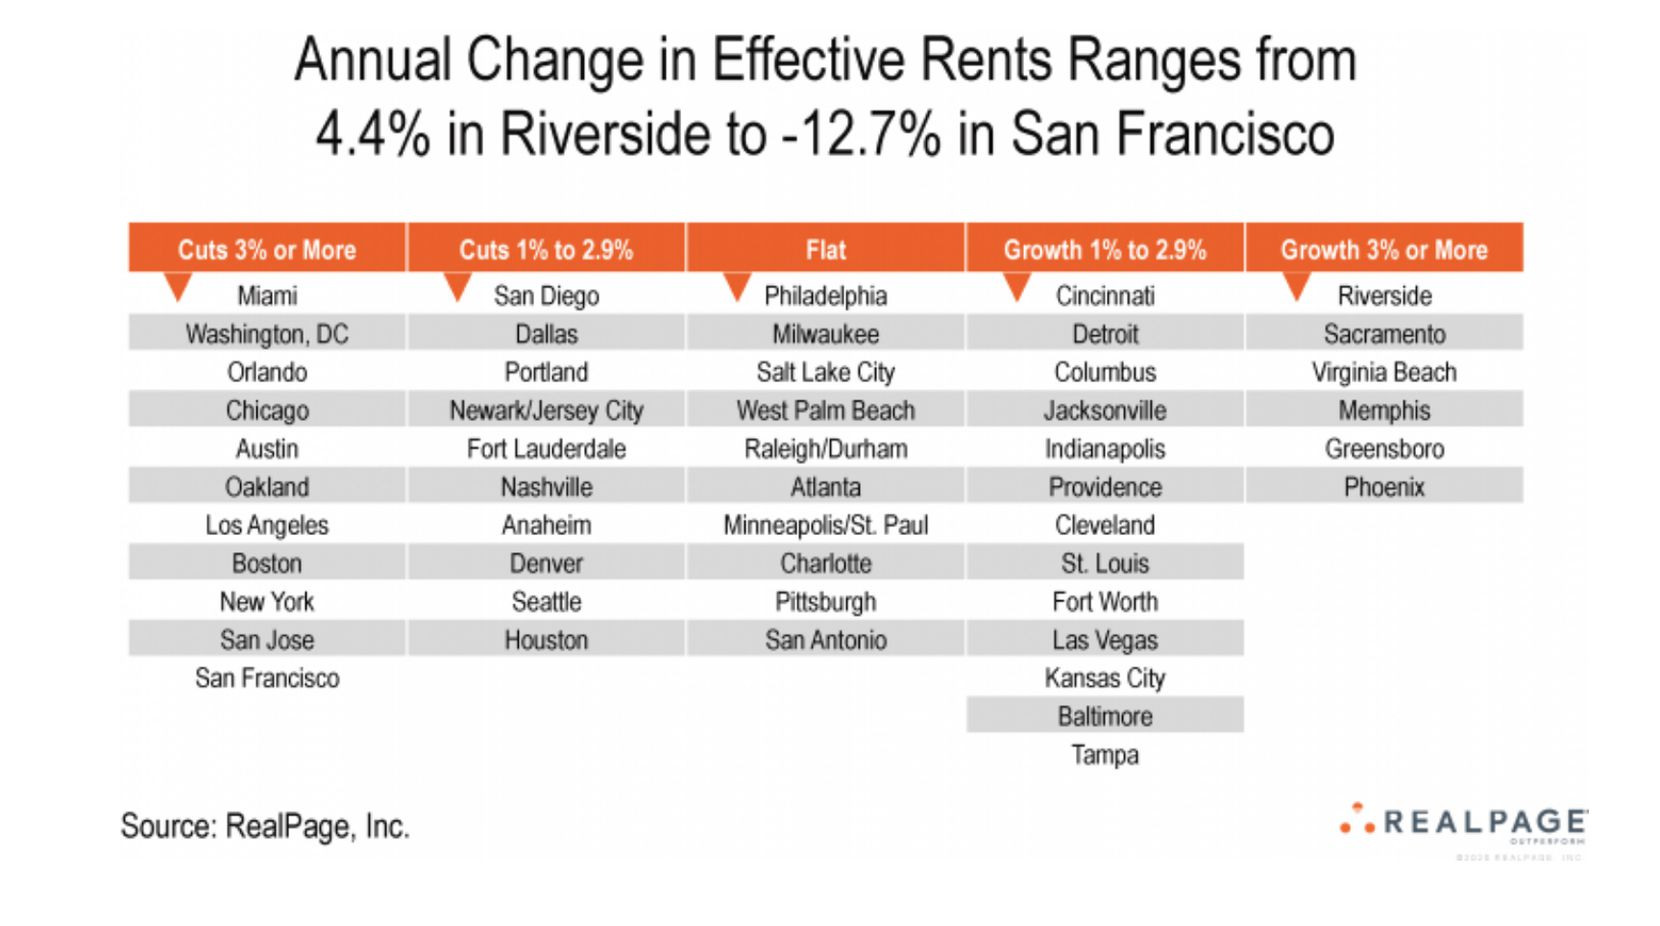 Apartment rents in the Dallas area are down by 1% to 3%.